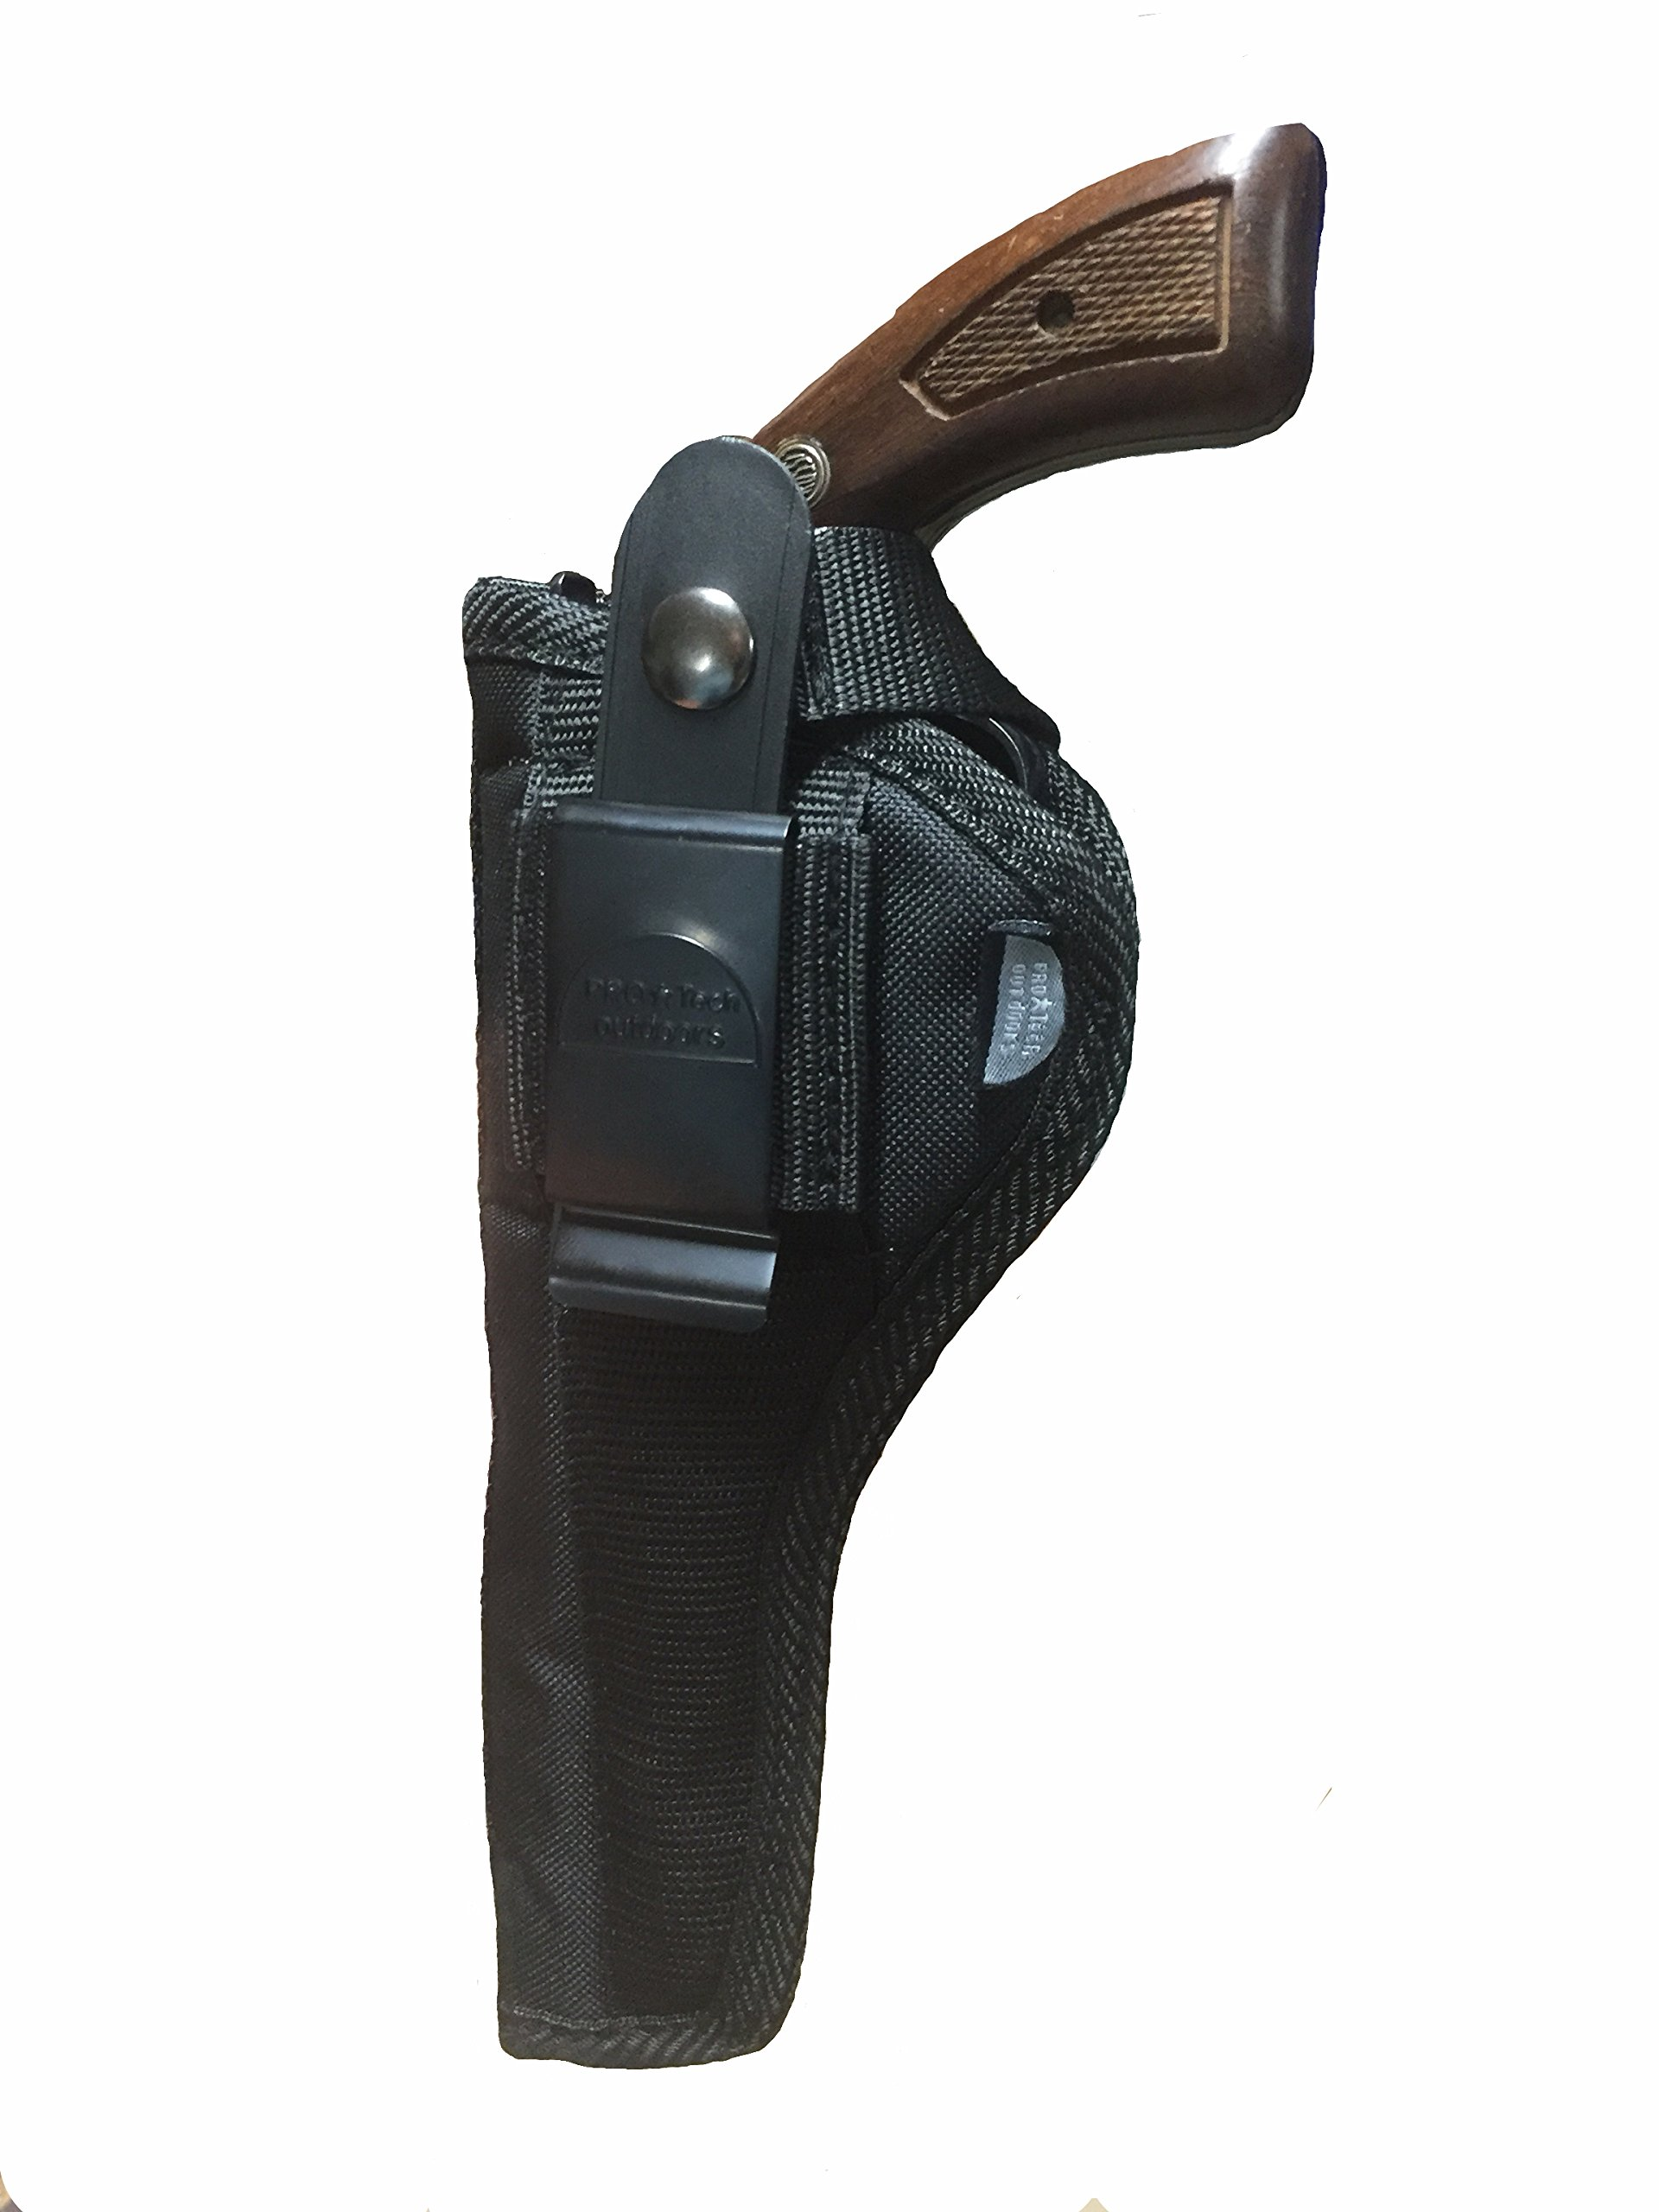 Pro-Tech Outdoors This Holster Fits The Taurus Judge 6 1/2'' Barrel